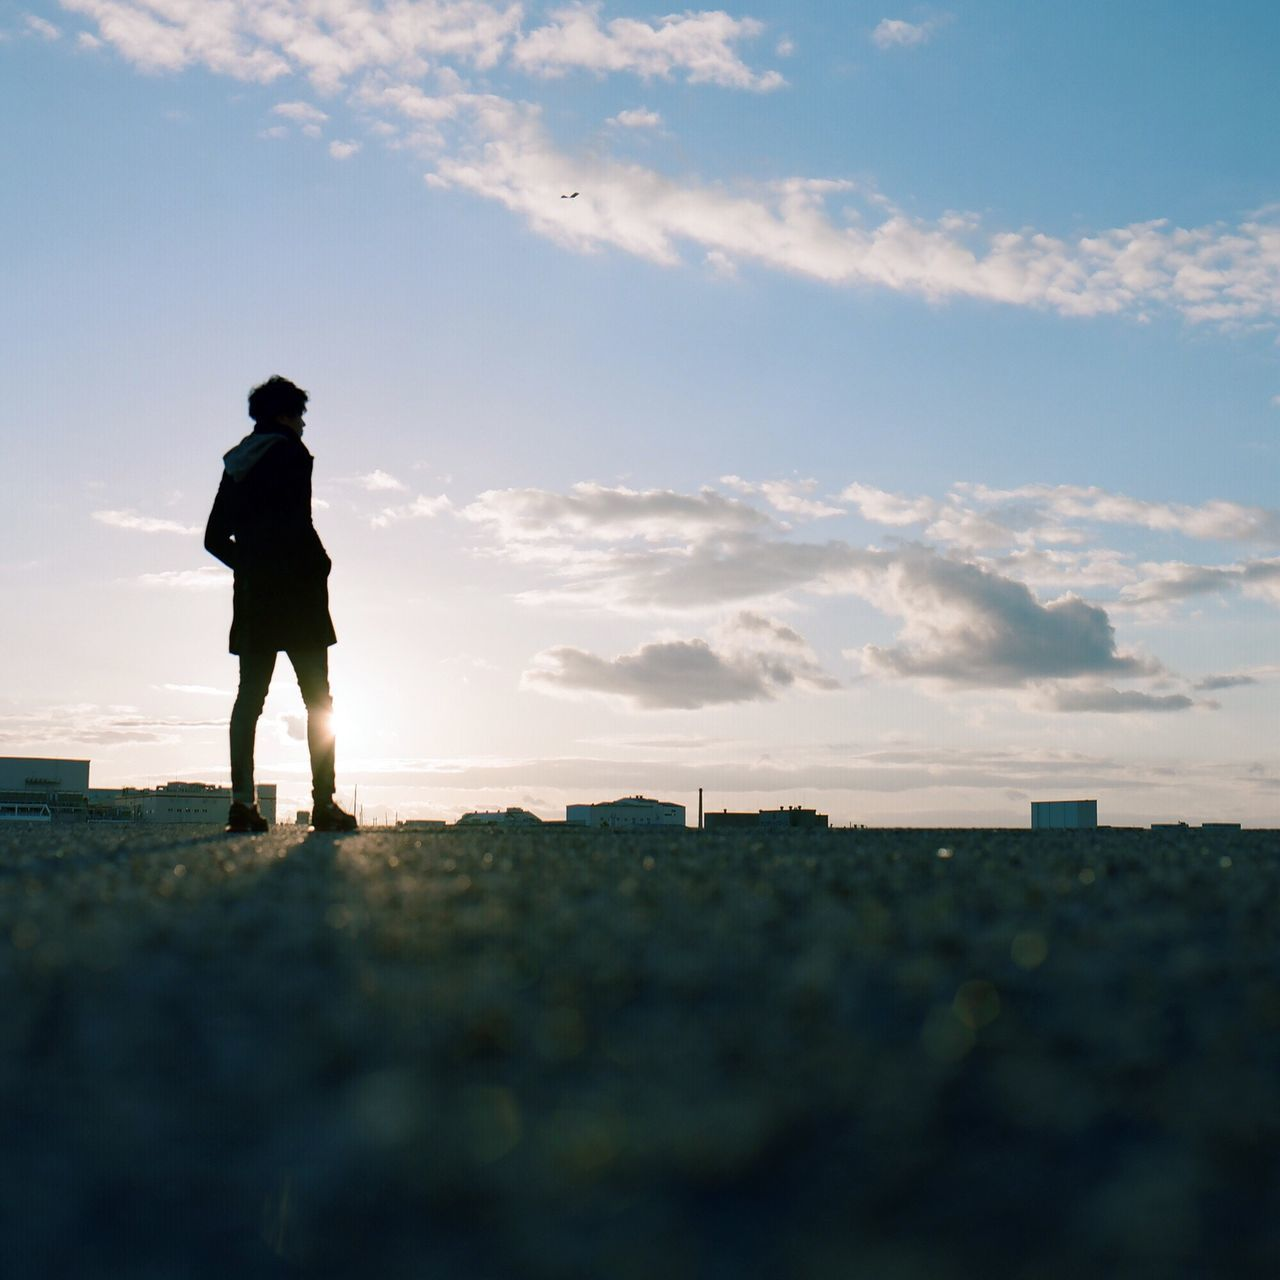 real people, one person, sky, full length, standing, walking, lifestyles, cloud - sky, outdoors, silhouette, leisure activity, sunset, nature, day, men, beauty in nature, people